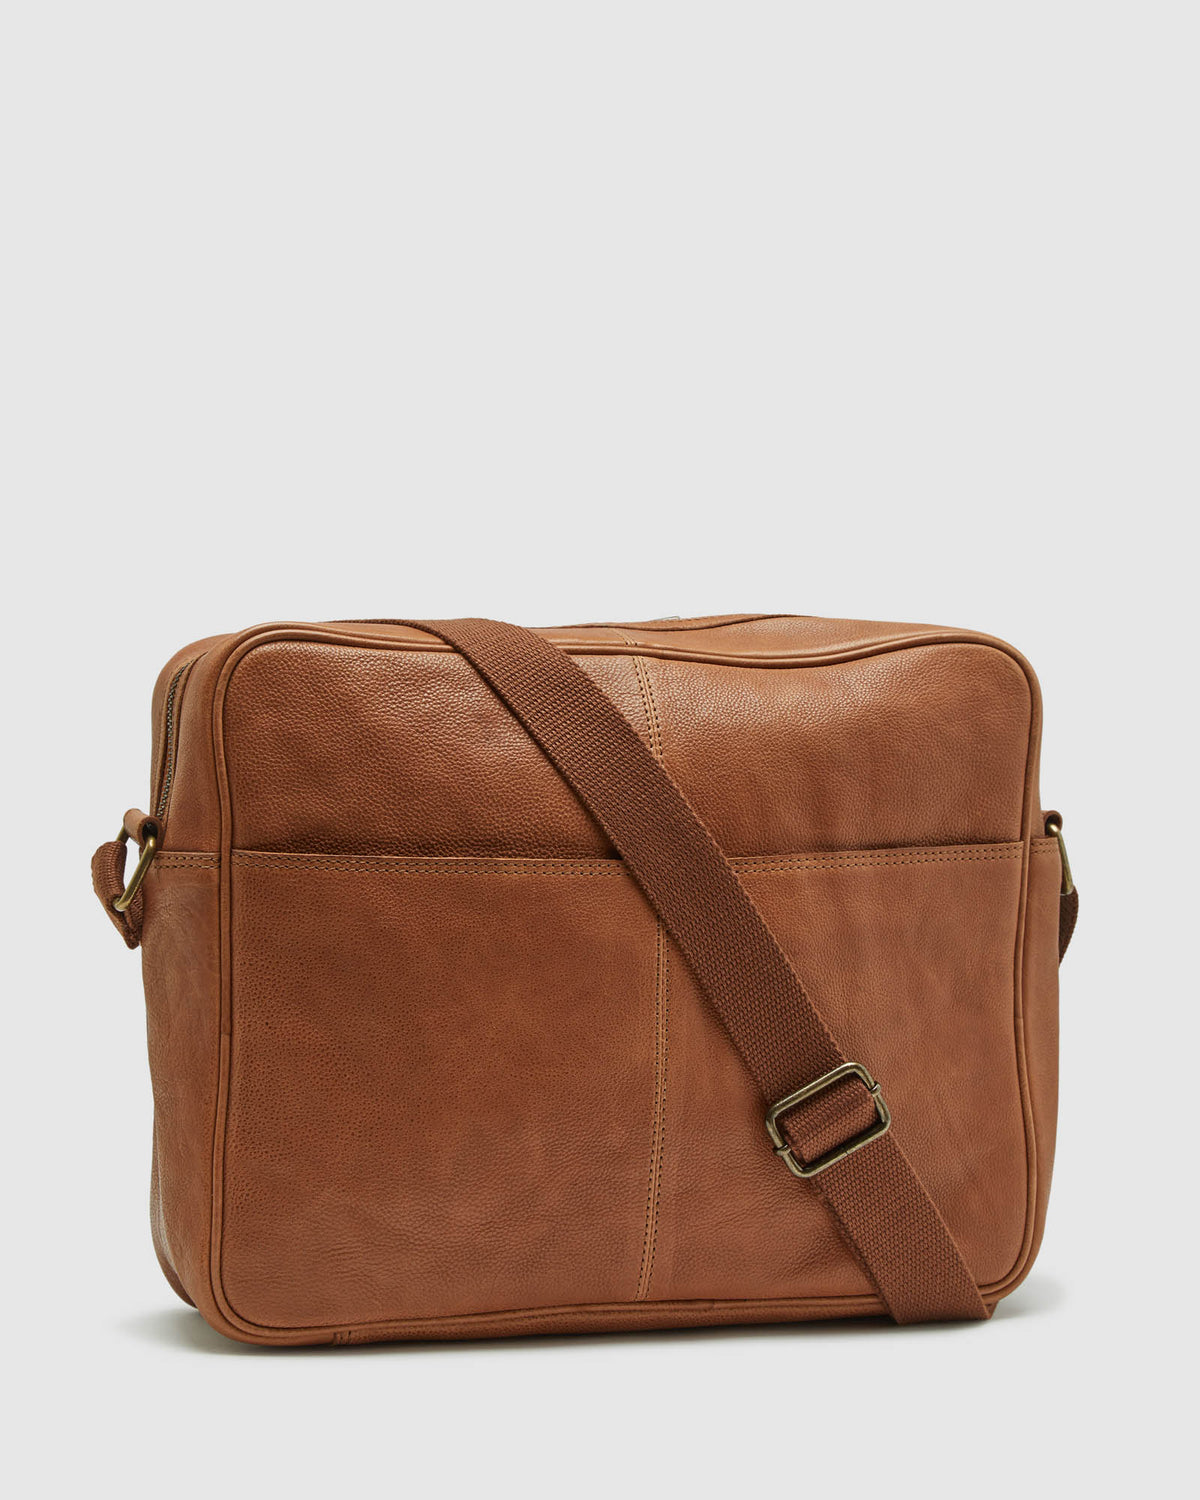 JOYCE LEATHER MESSENGER BAG